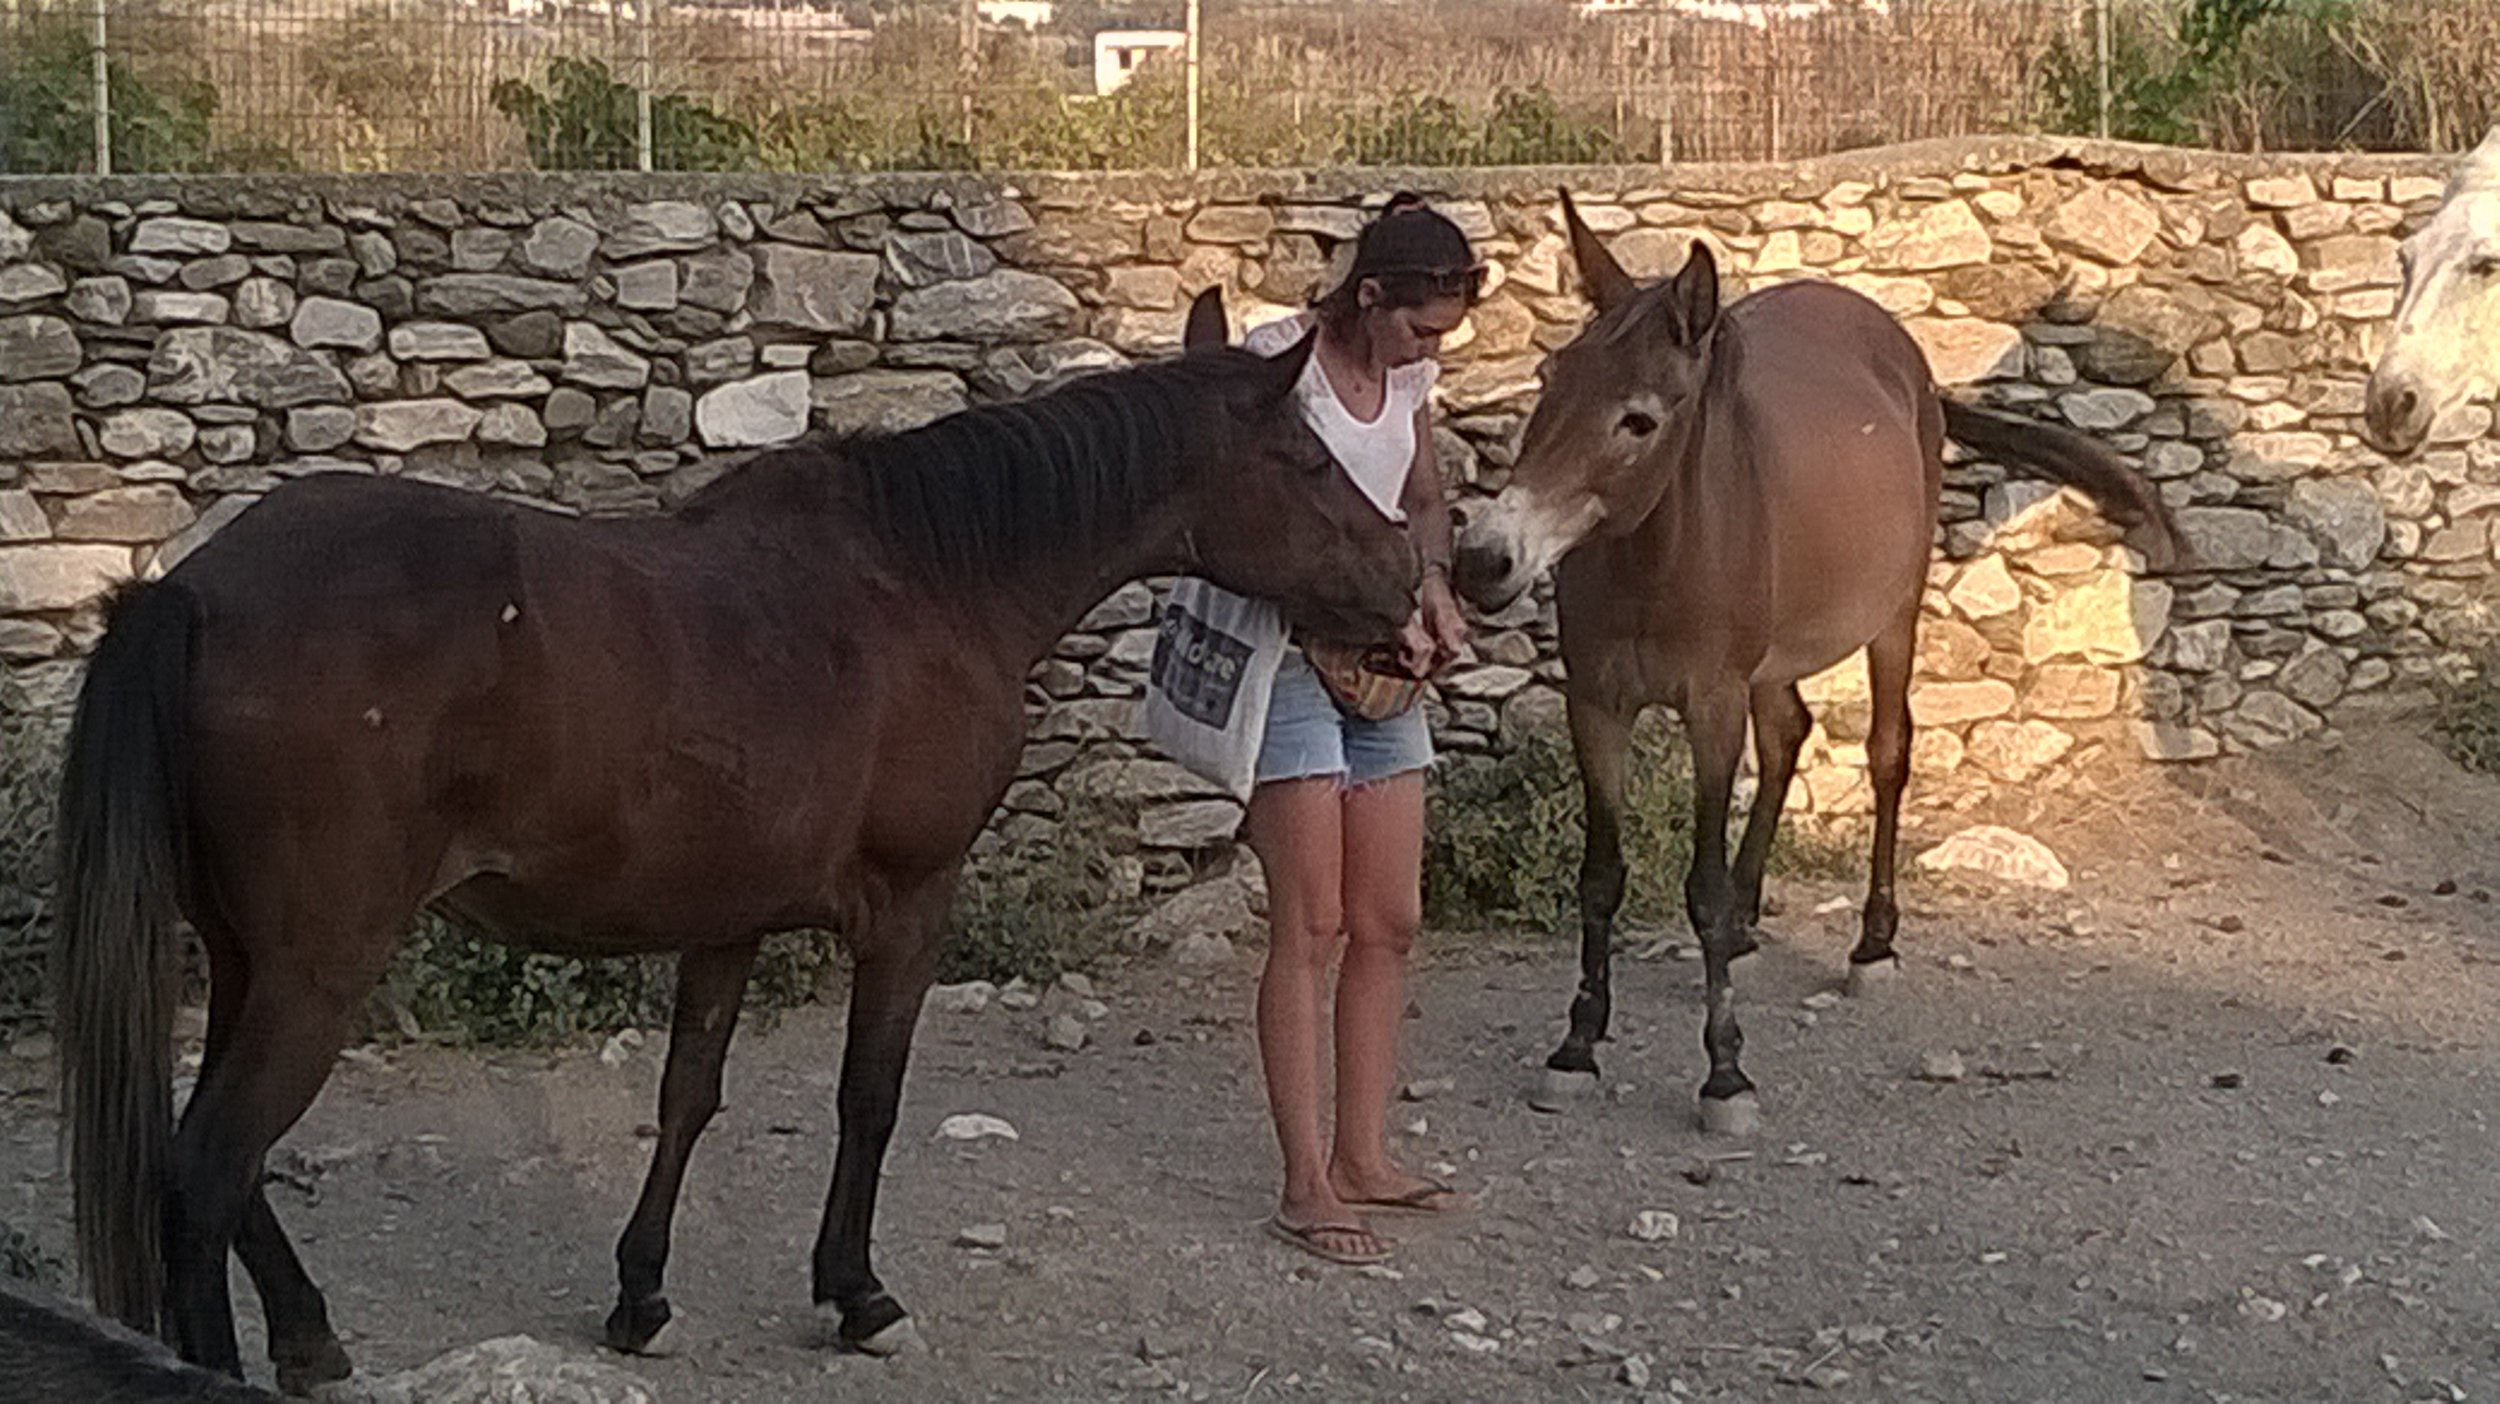 Inma gives treats to Paola the mare and Mona the mule